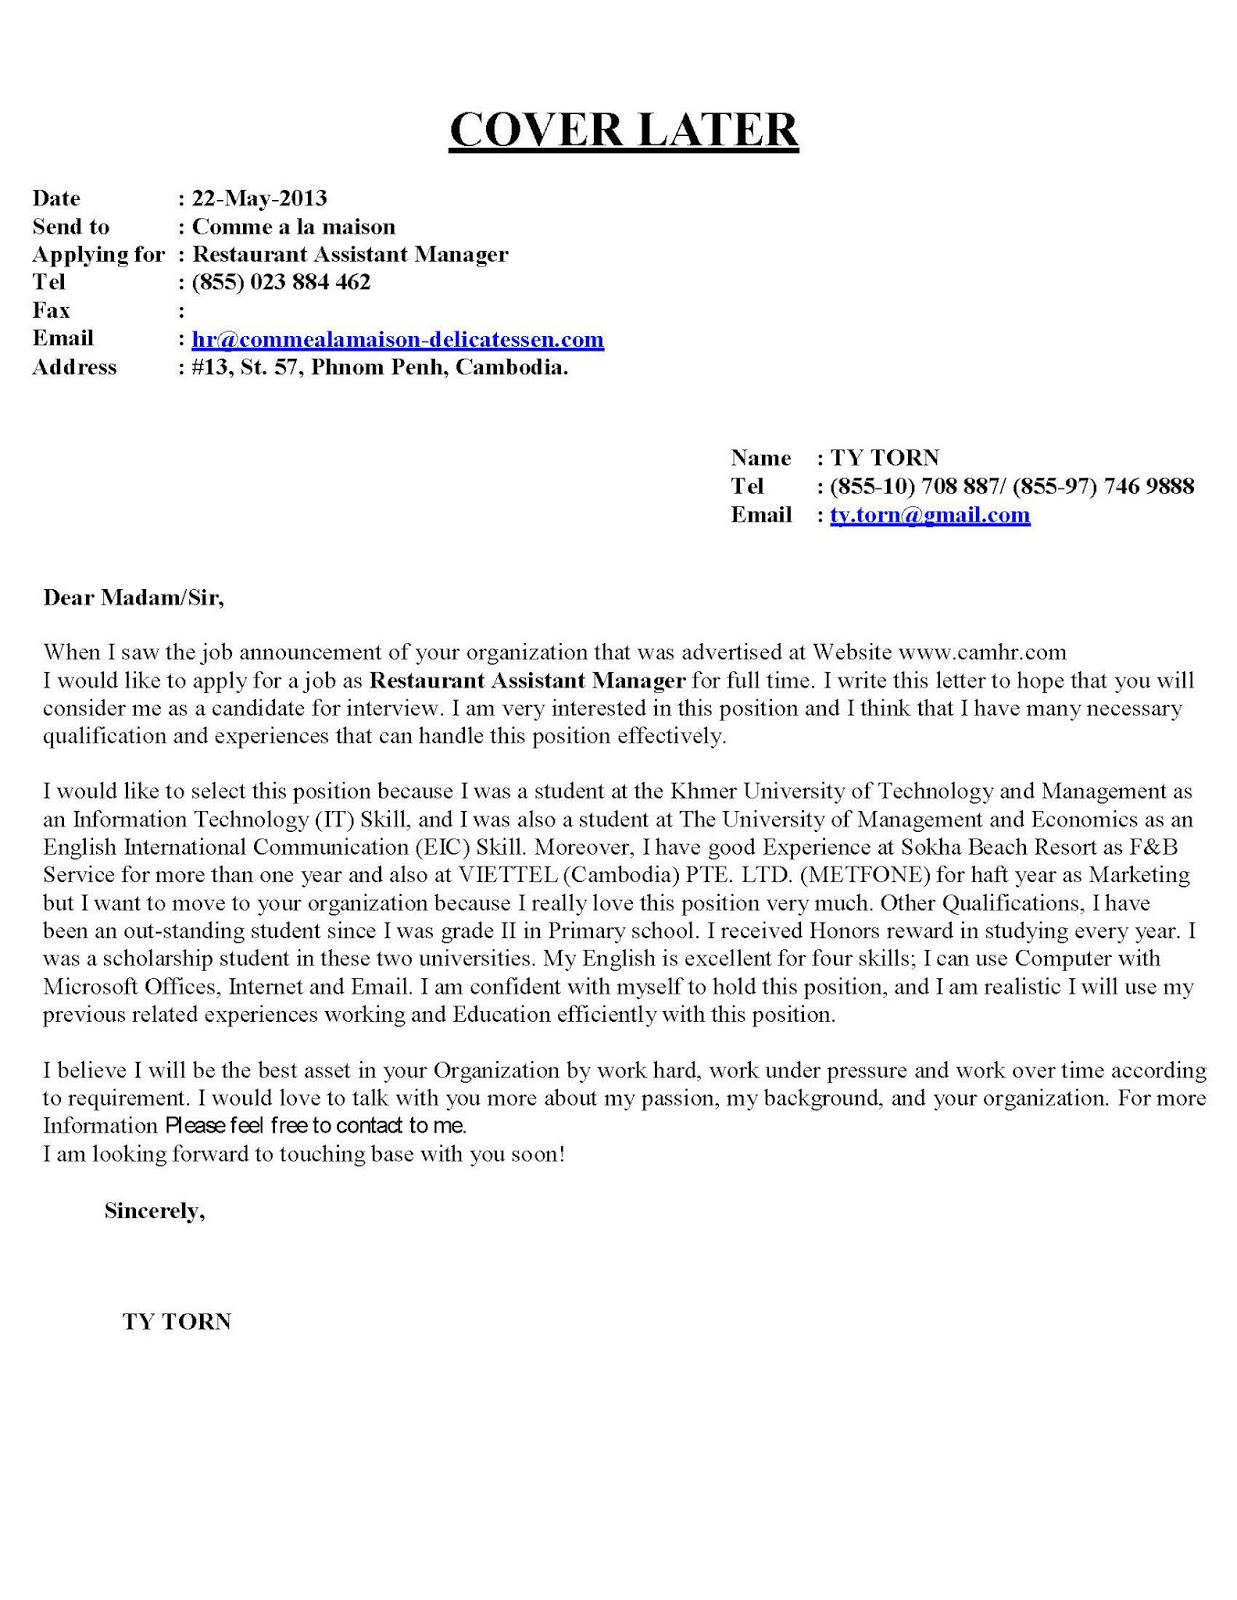 free download sample 19 cv and cover letter khmer generate better ...